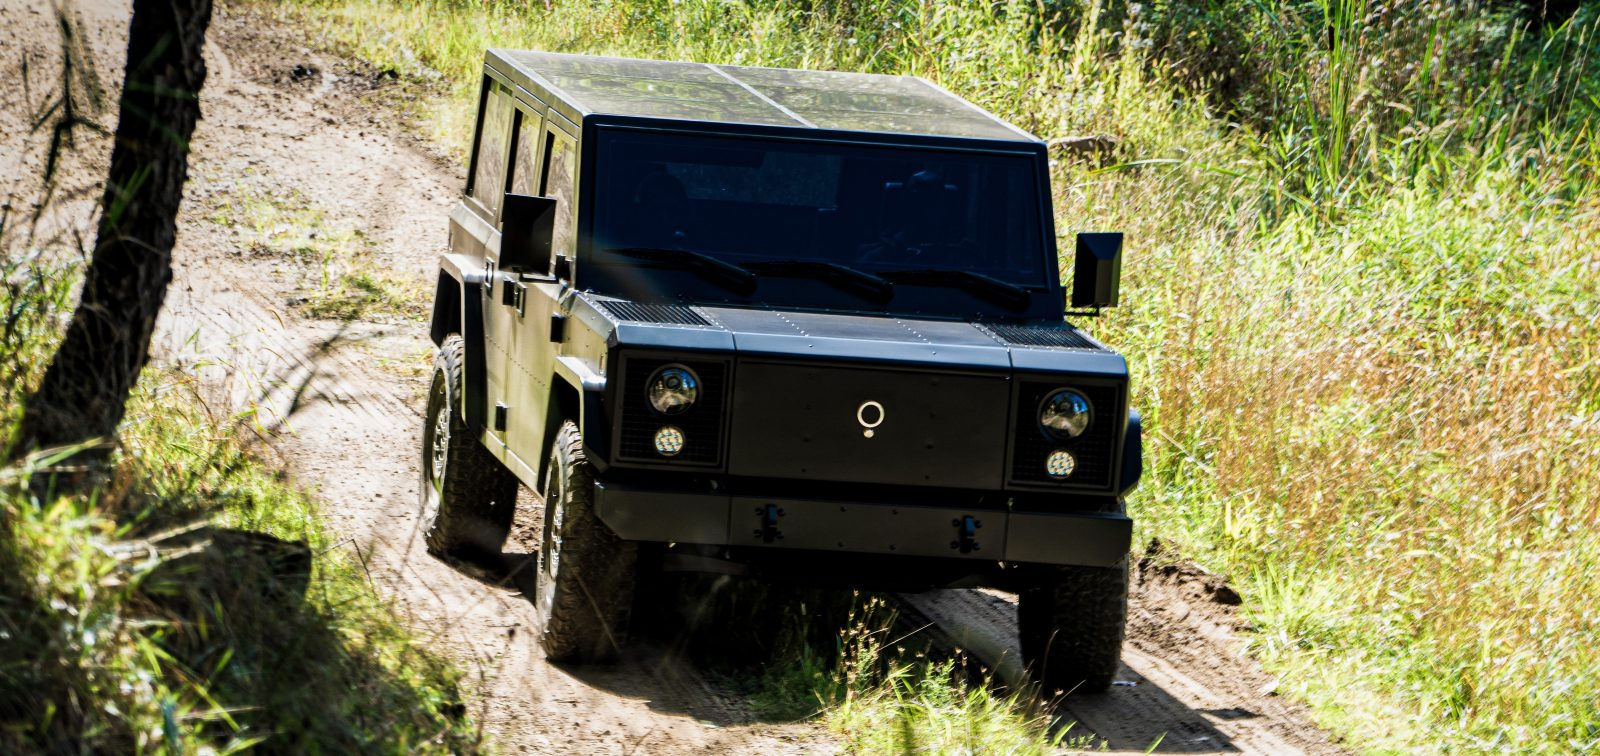 Bollinger announces pricing for rugged electric trucks, it's shockingly high